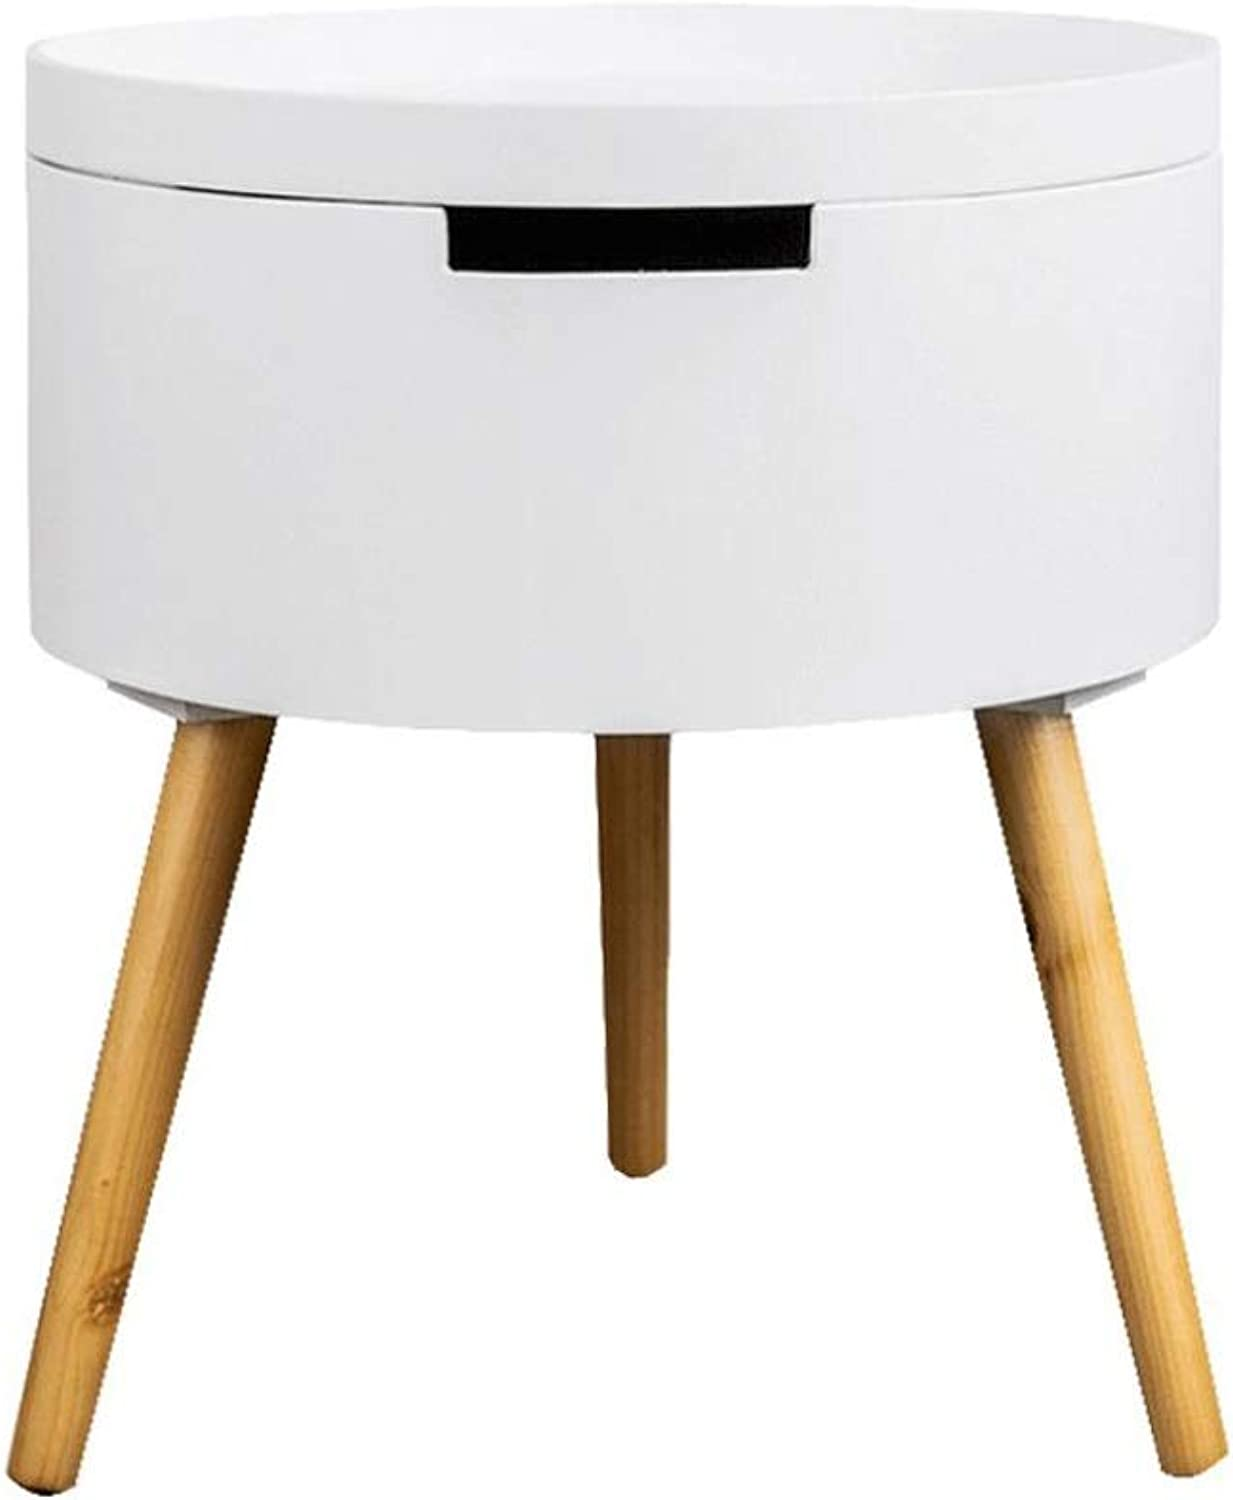 End Table, Sofa Side End Table Bedside Table Nightstand Small Table with Drawer,Wood Legs,38 X 38 X 43 cm (color   White)